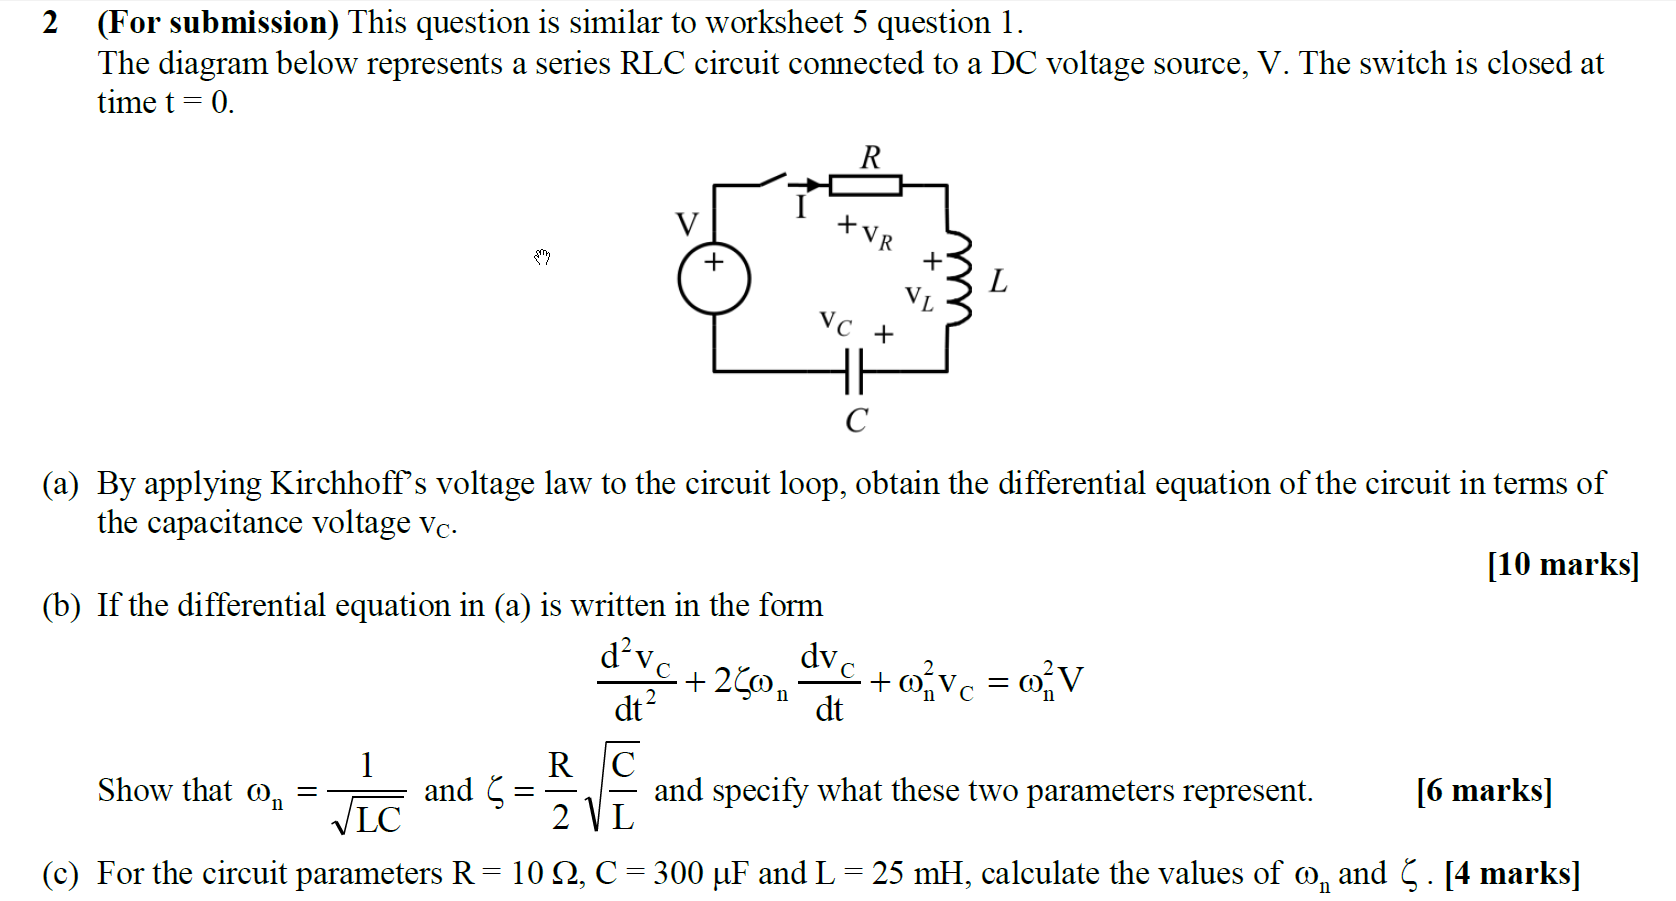 This question is similar to worksheet 5 question 1